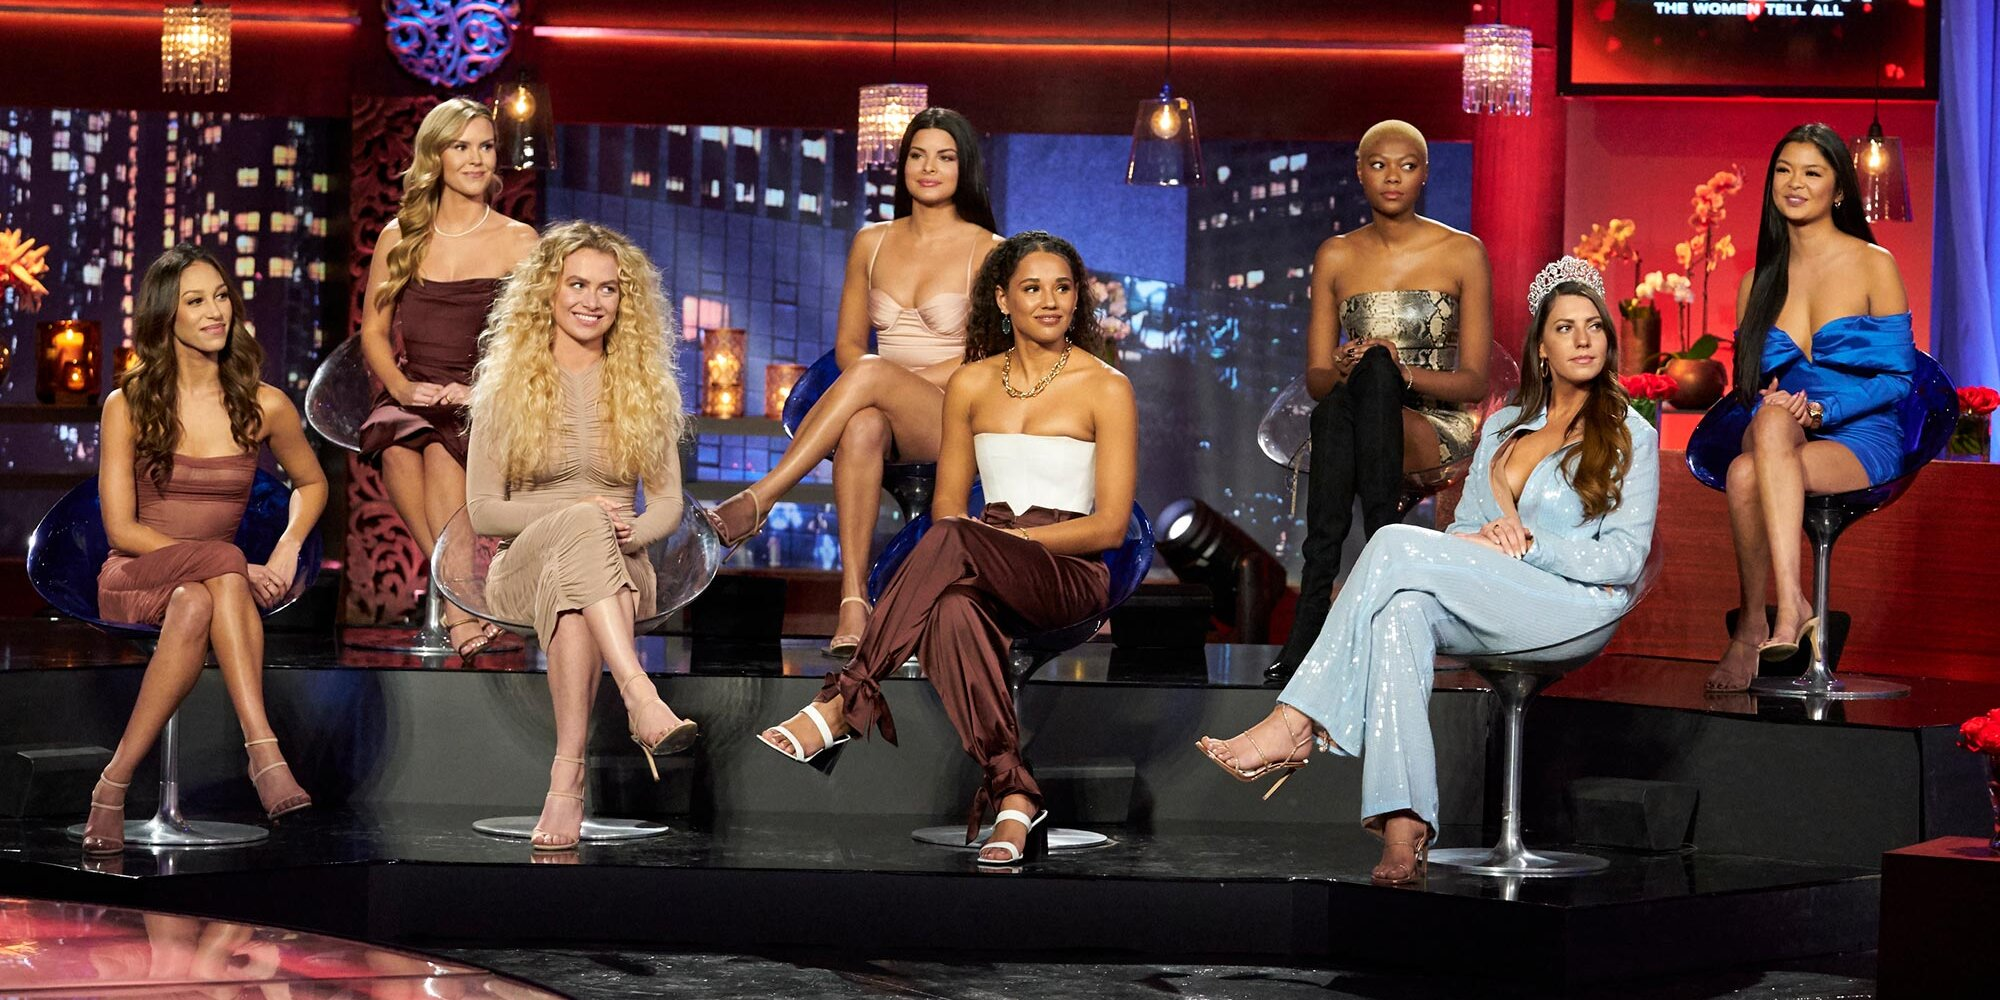 'The Bachelor: The Women Tell All' recap: All apologies – Entertainment Weekly